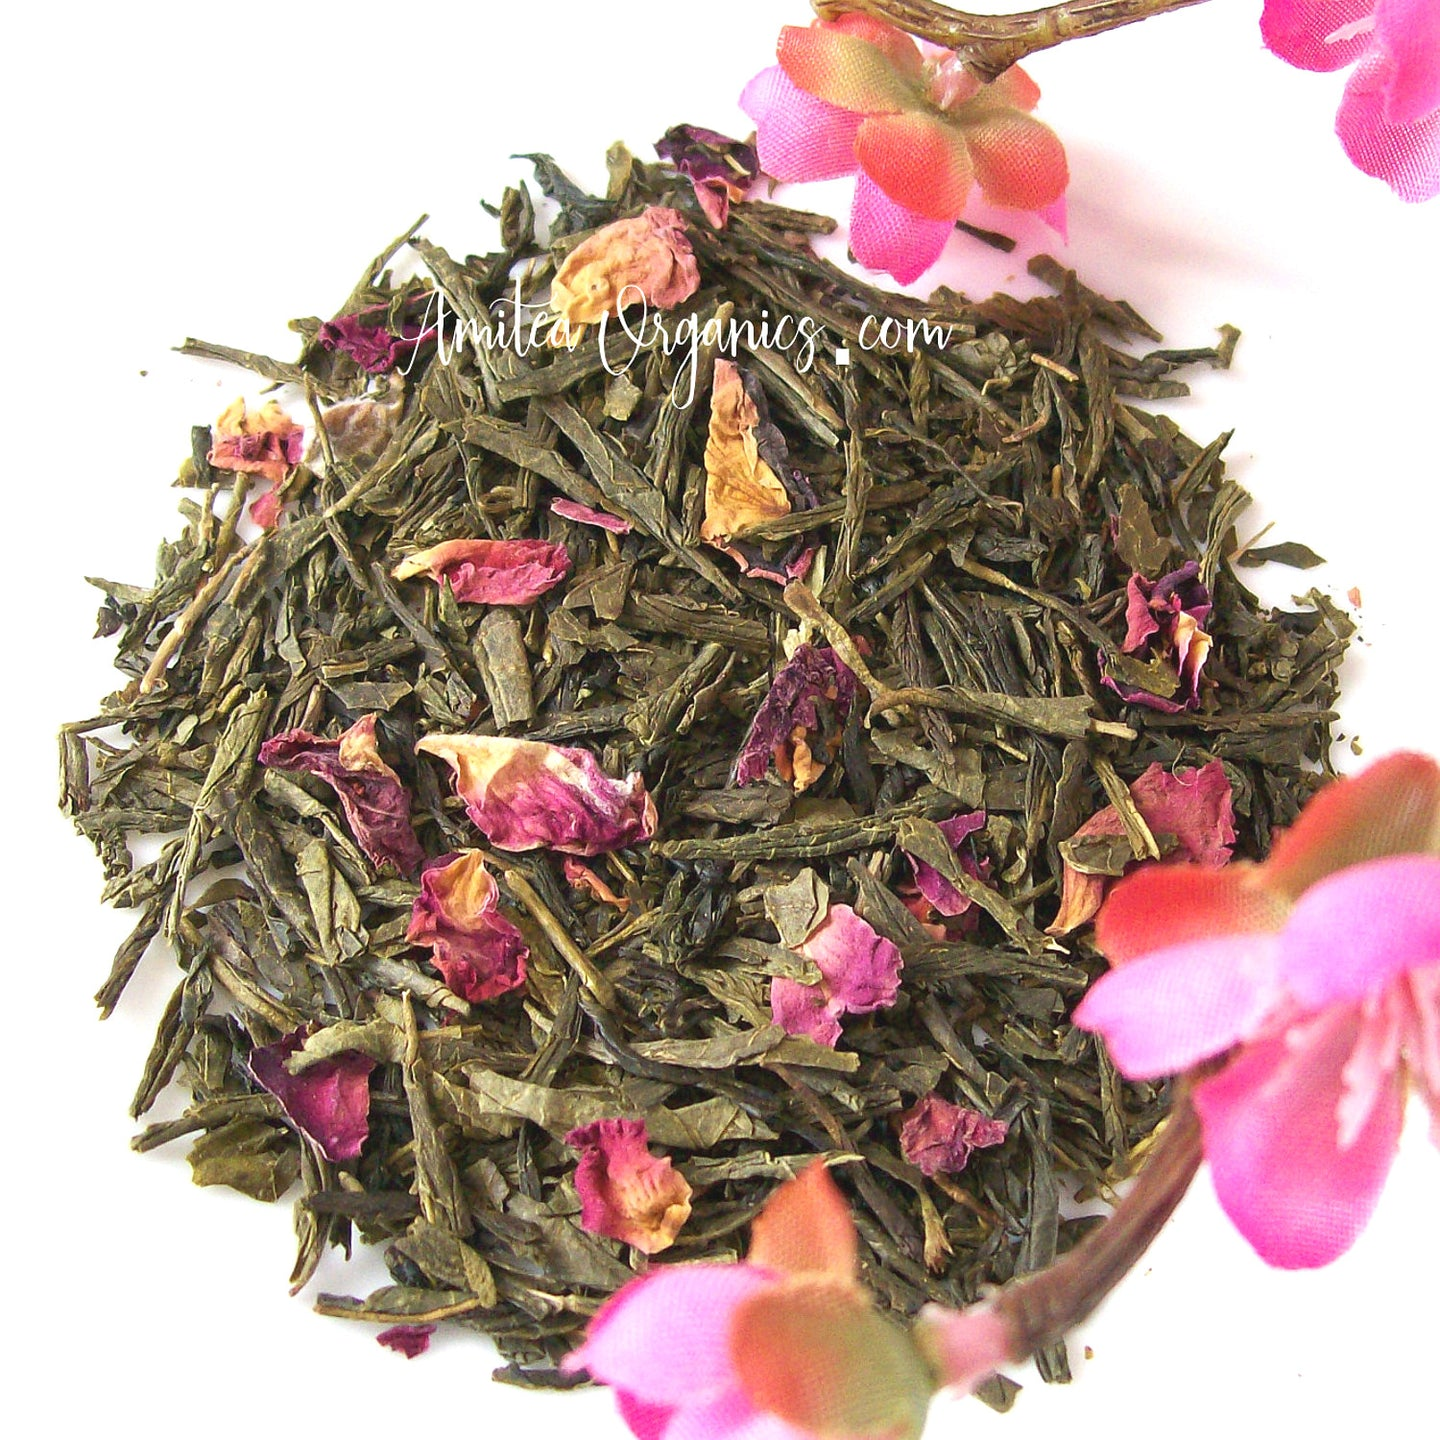 SHINJUKU SPRING Cherry Blossom Tea, Small Batch Organic Green Tea | 8 oz BULK | Wedding Tea | Bridal Shower Tea | Fundraiser Tea Party | Wedding Favor Tea